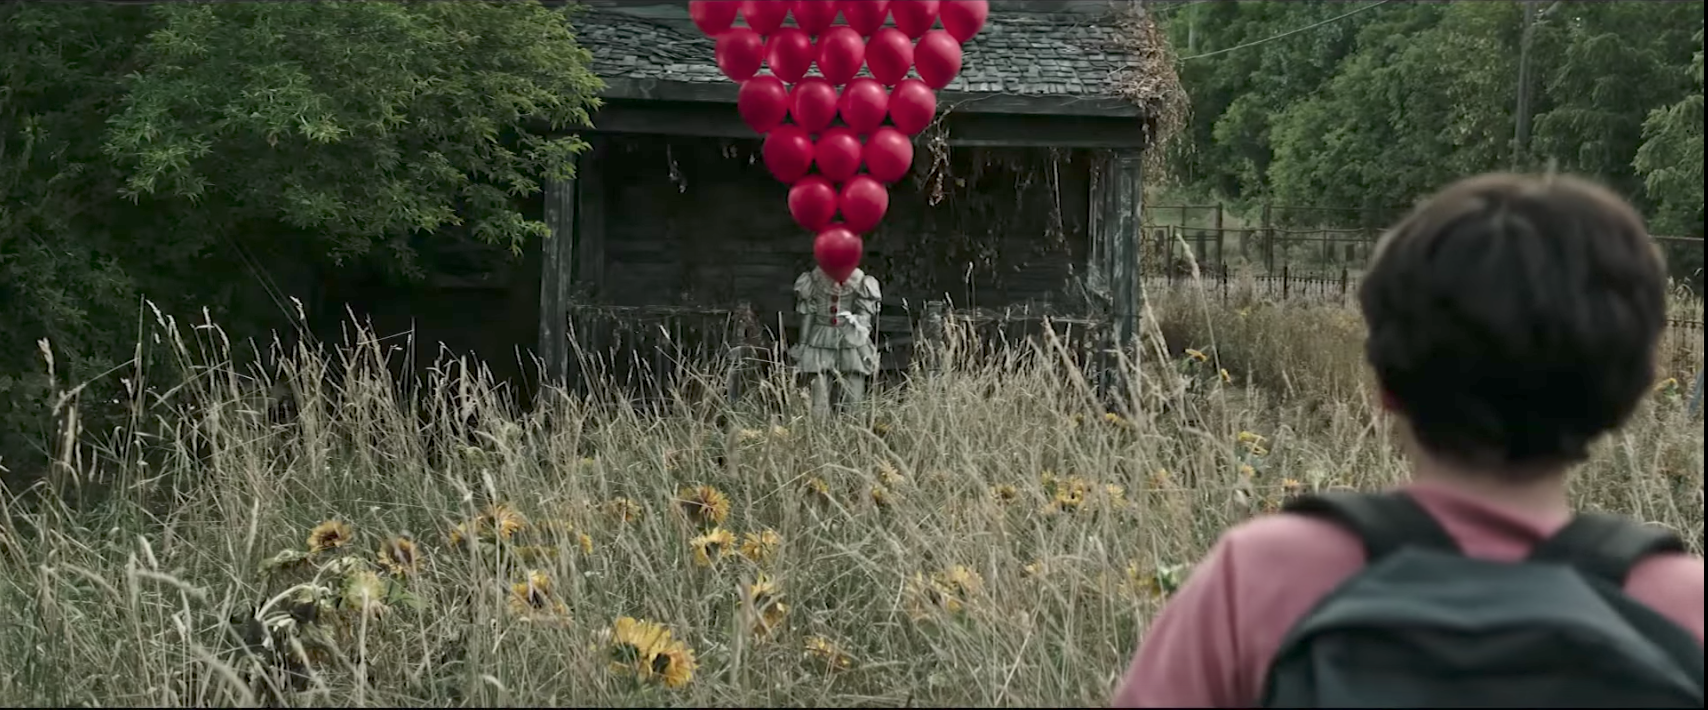 Pennywise holding a large arrangement of red balloons